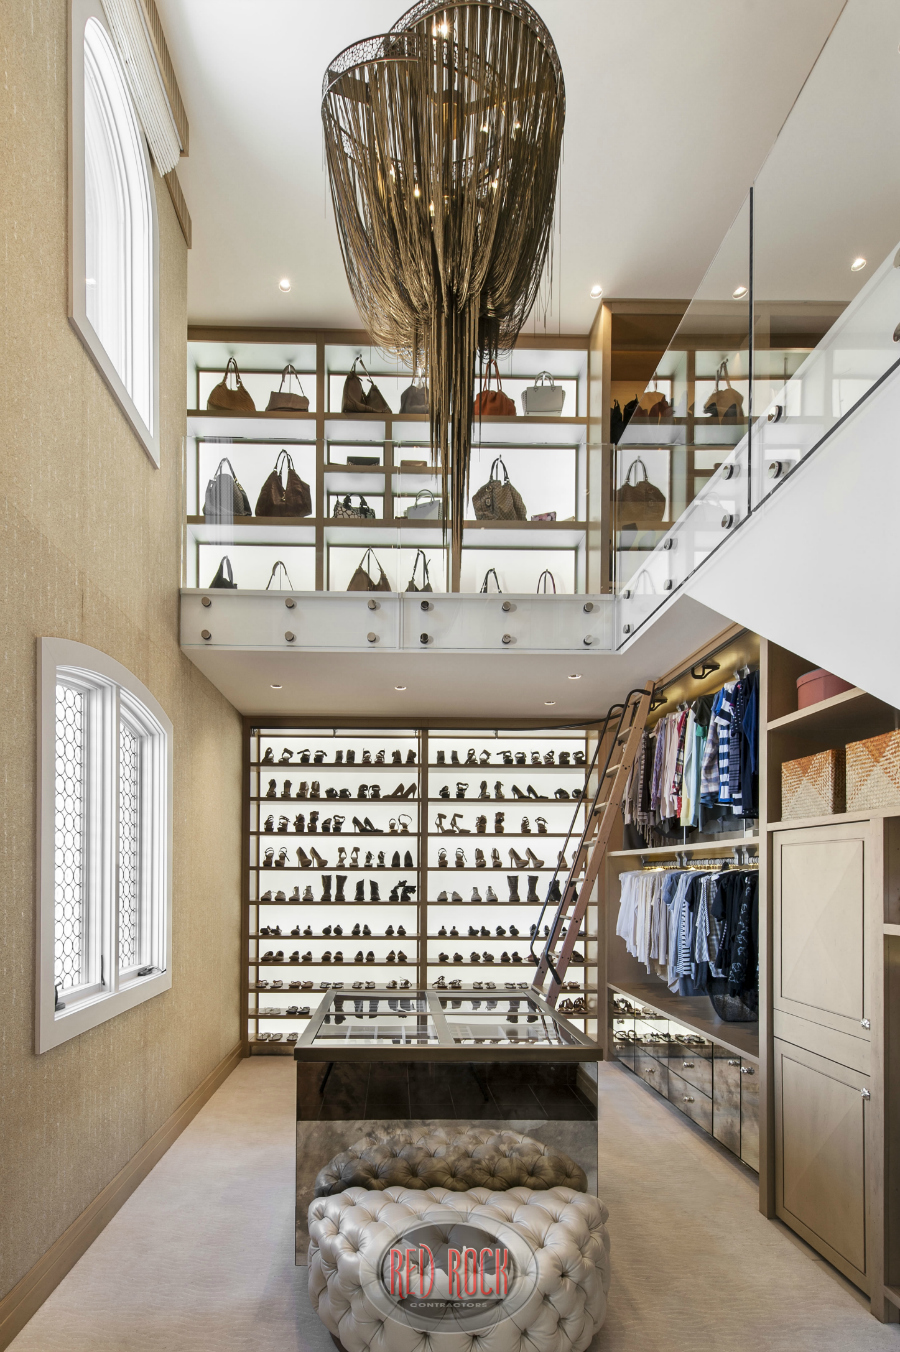 This photo showcases the extensive shoe and handbag storage areas of this luxurious 2-story walk-in closet.